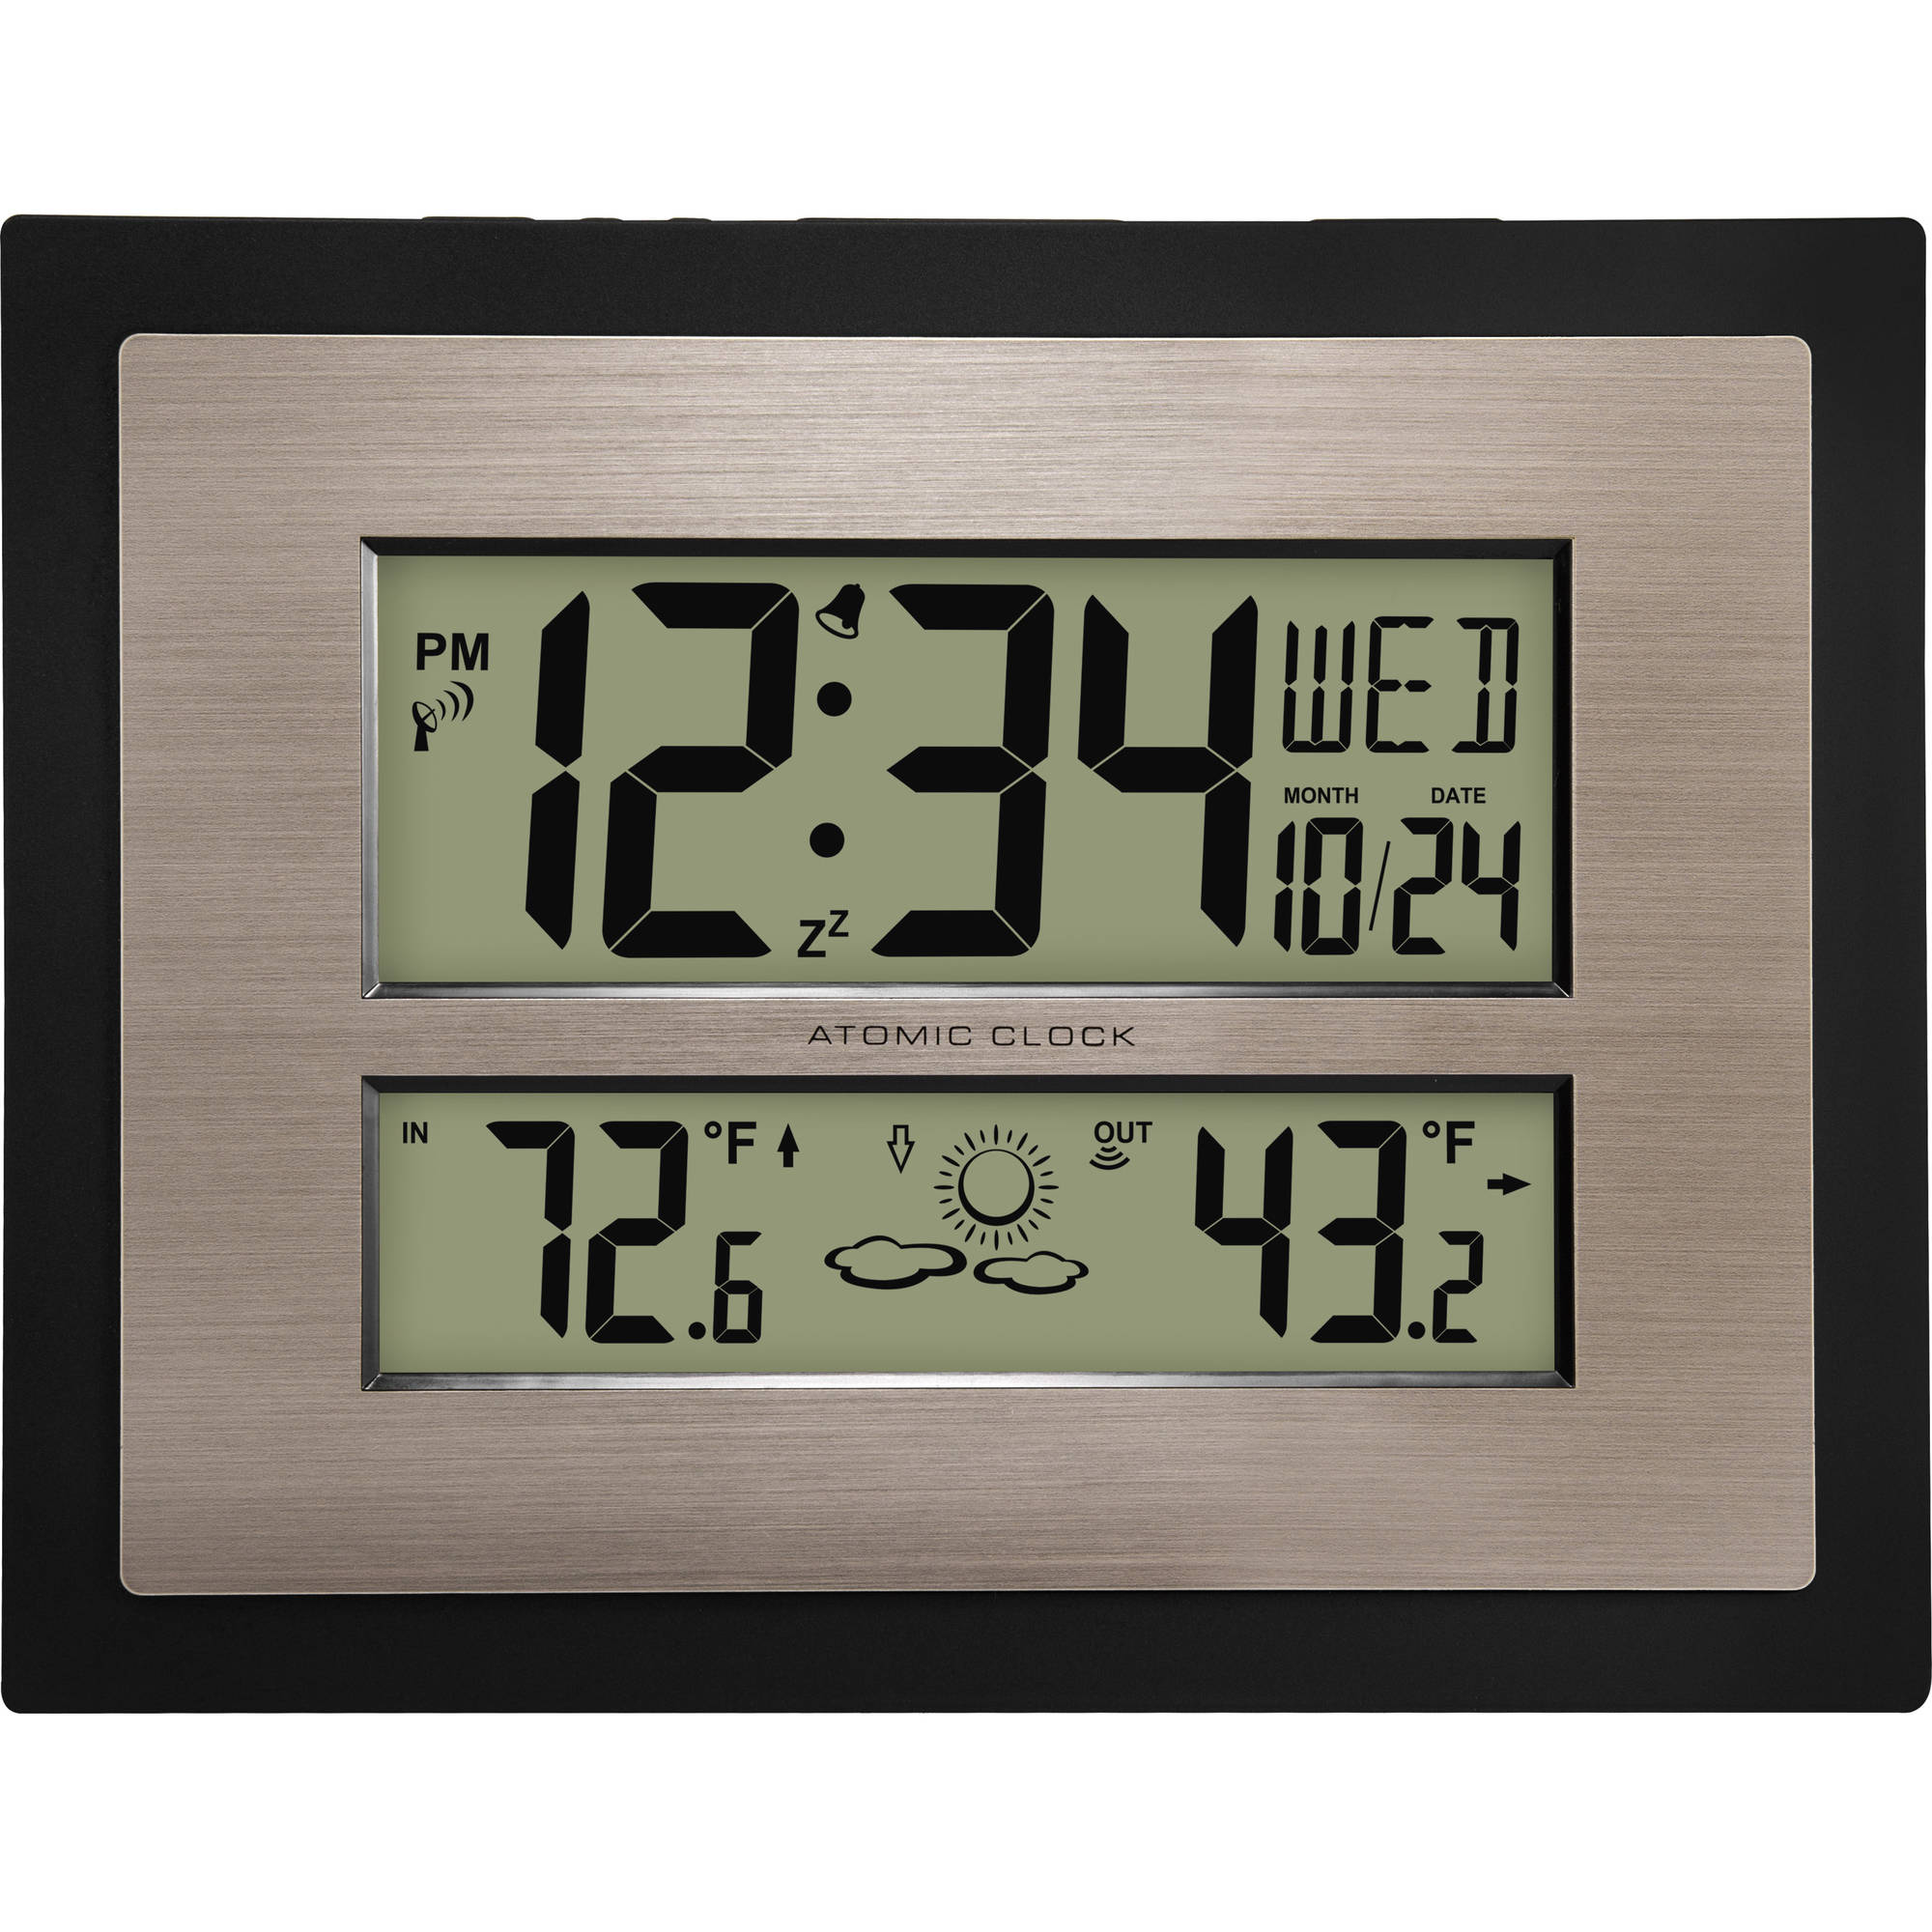 Better Homes and Gardens Atomic Digital Wall Clock with Forecast